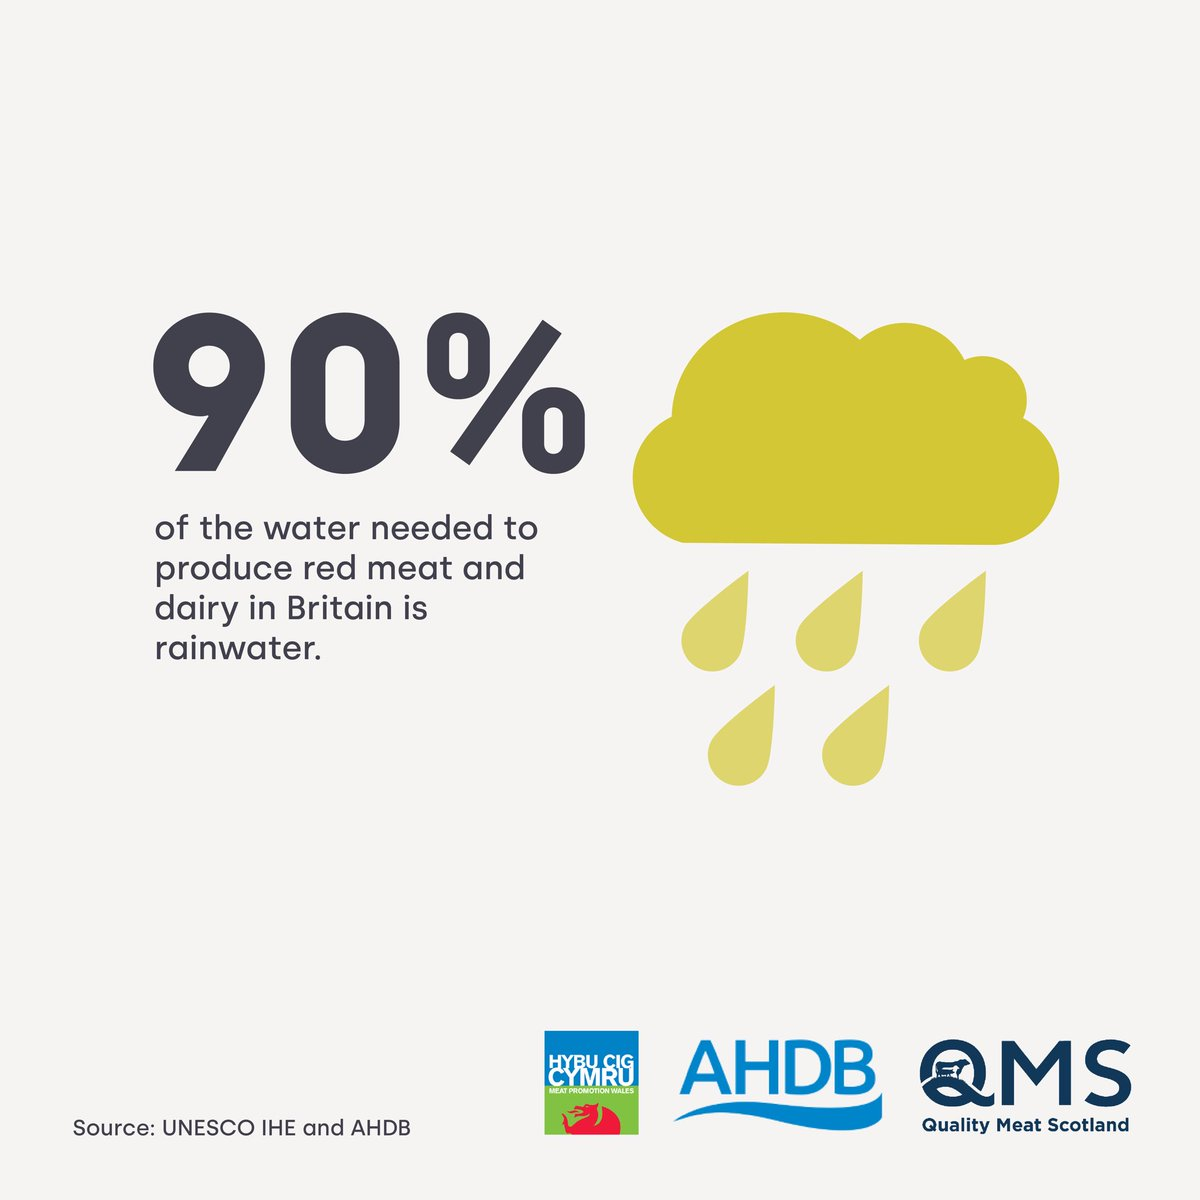 Some countries are facing real difficulties with water as the climate changes, but here in Scotland we have plenty of rain for our livestock to drink & to make our grass grow - this means #ScotchBeef & #ScotchLamb can be produced sustainably #meatwithintegrity